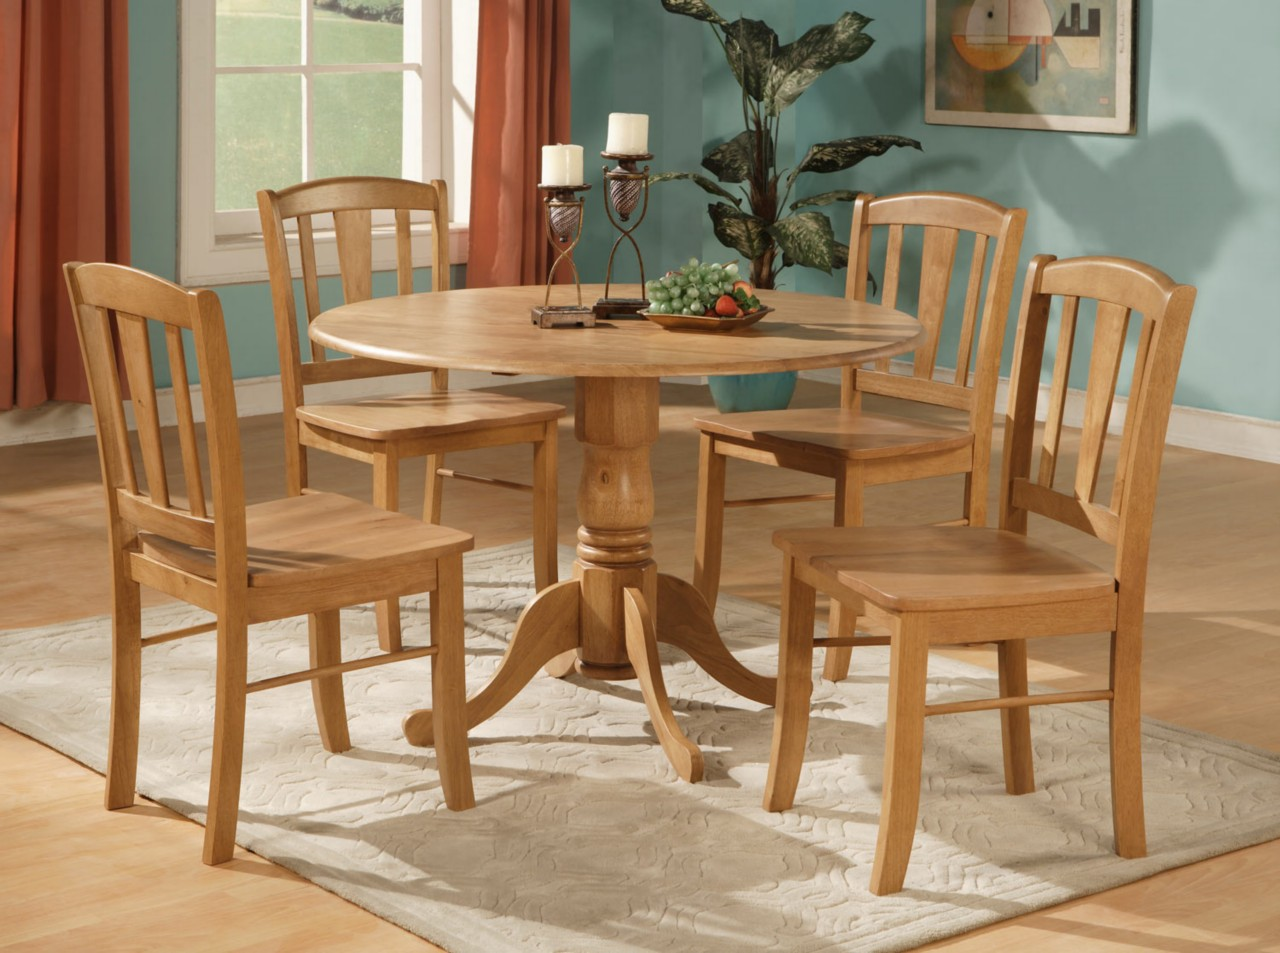 Solid Cherry Dining Room Table Solid Cherry Dining Room Chairs Counter Height Kitchen Table With